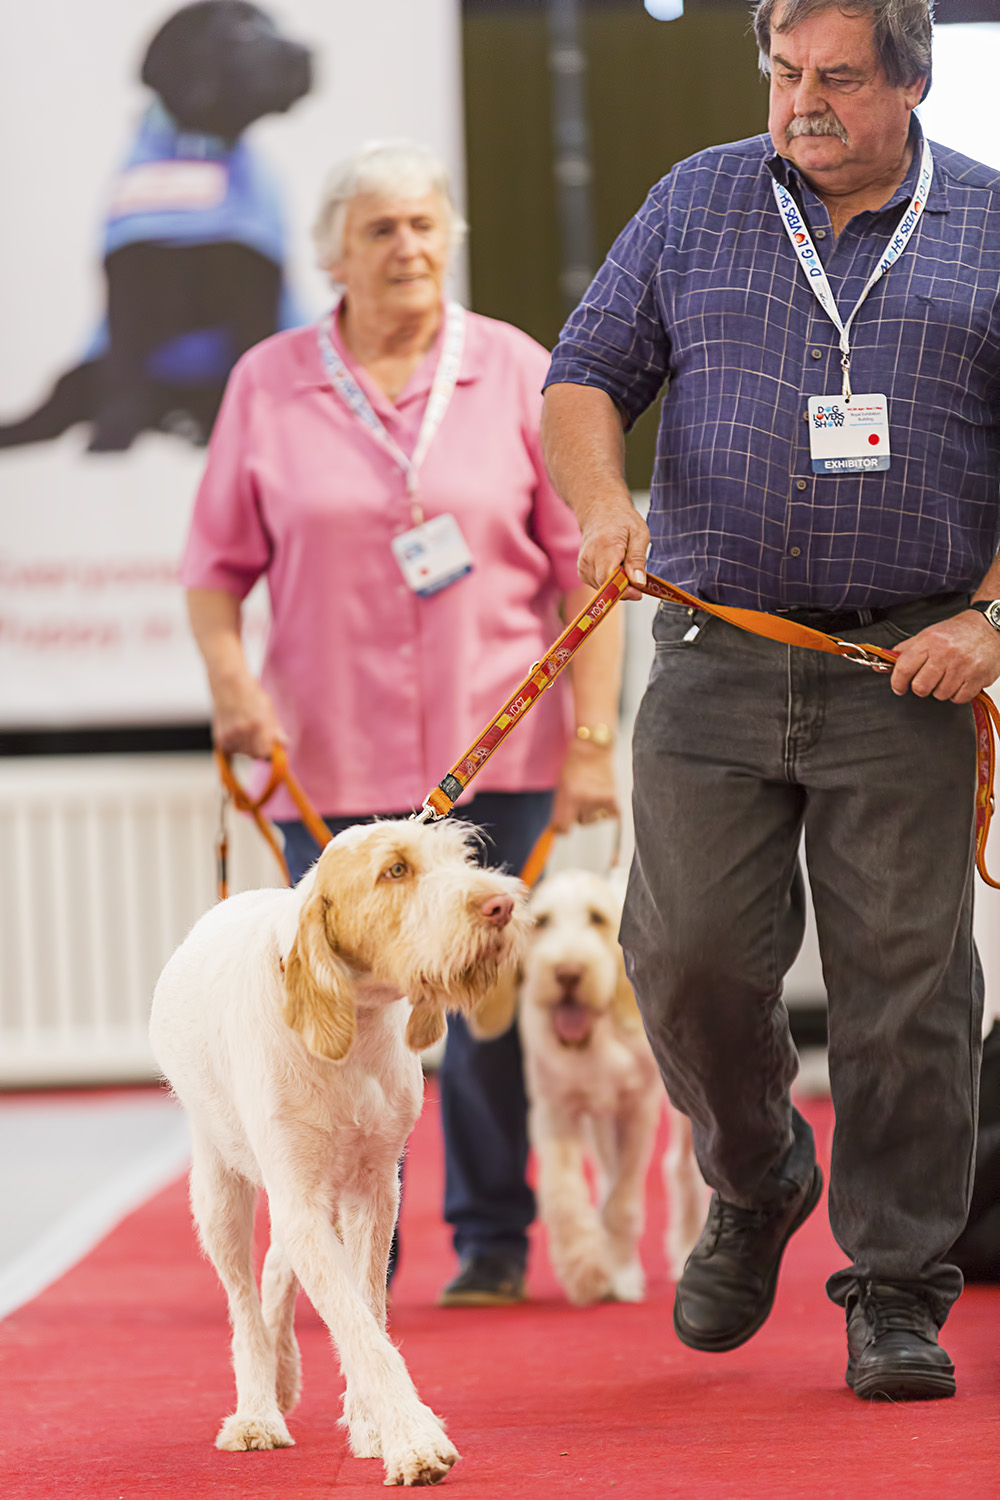 The Italian Spinone strutting his stuff at the dog show